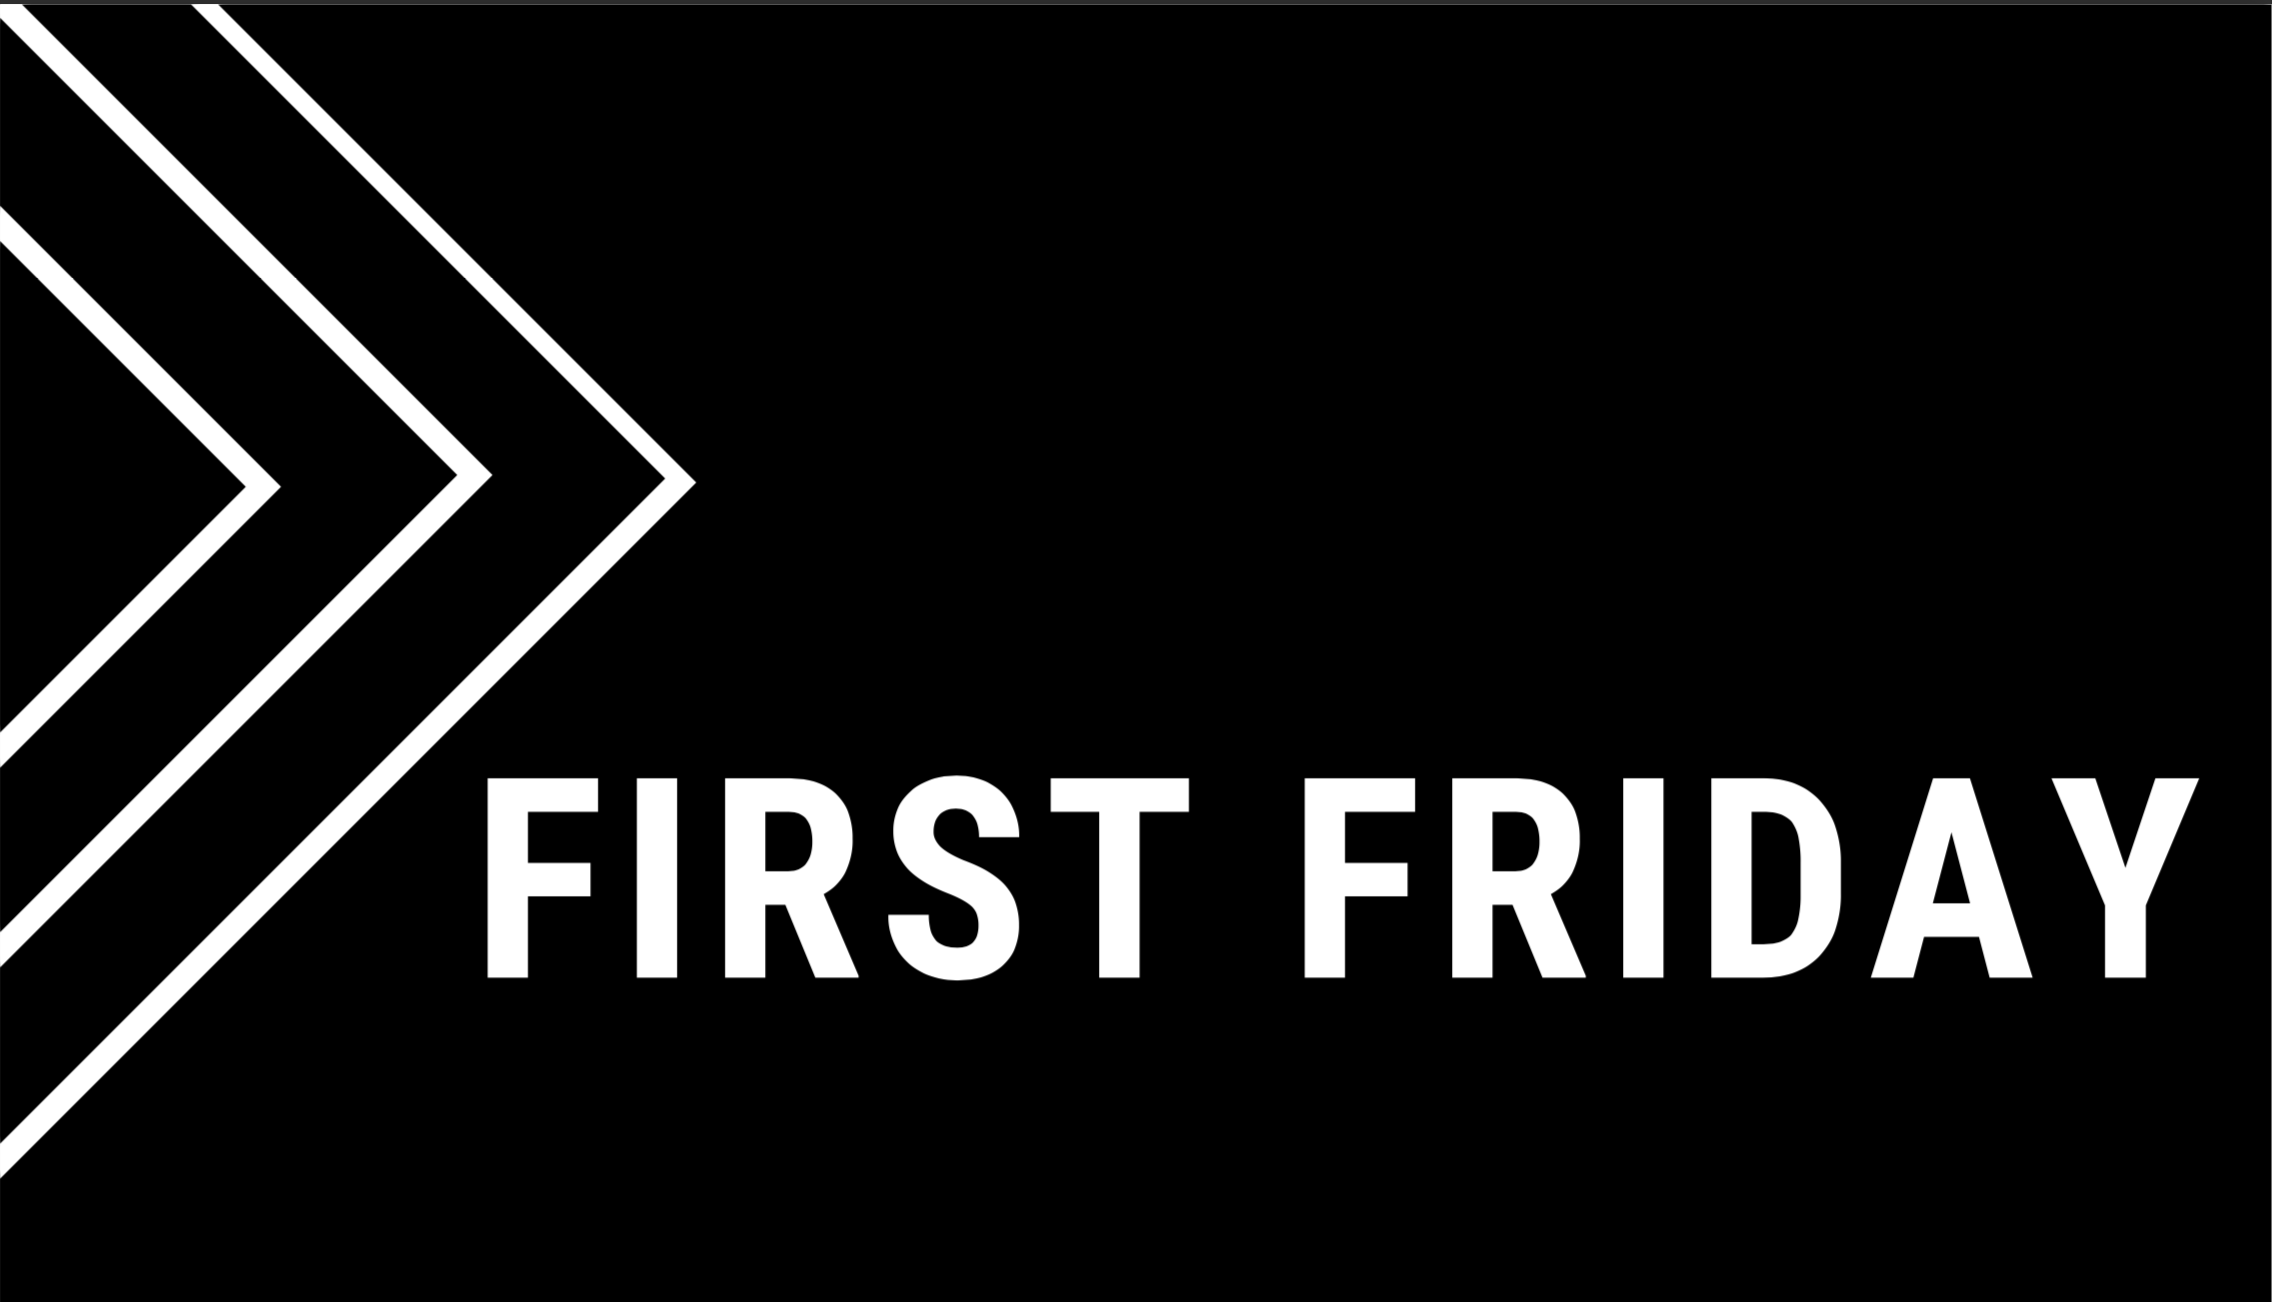 First First Friday